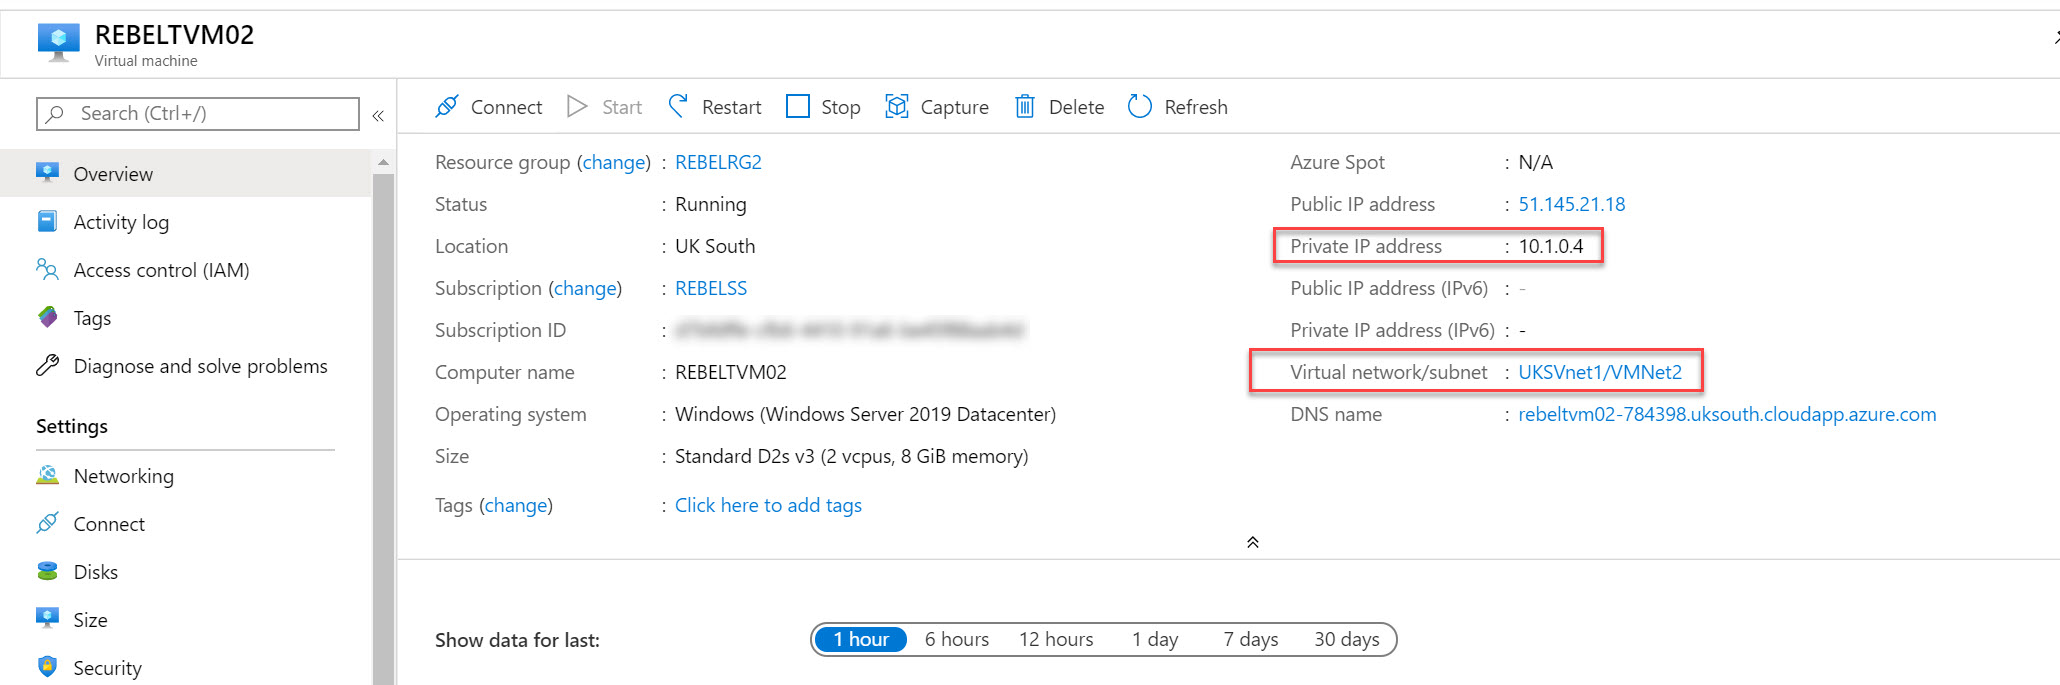 azure virtual machine properties page